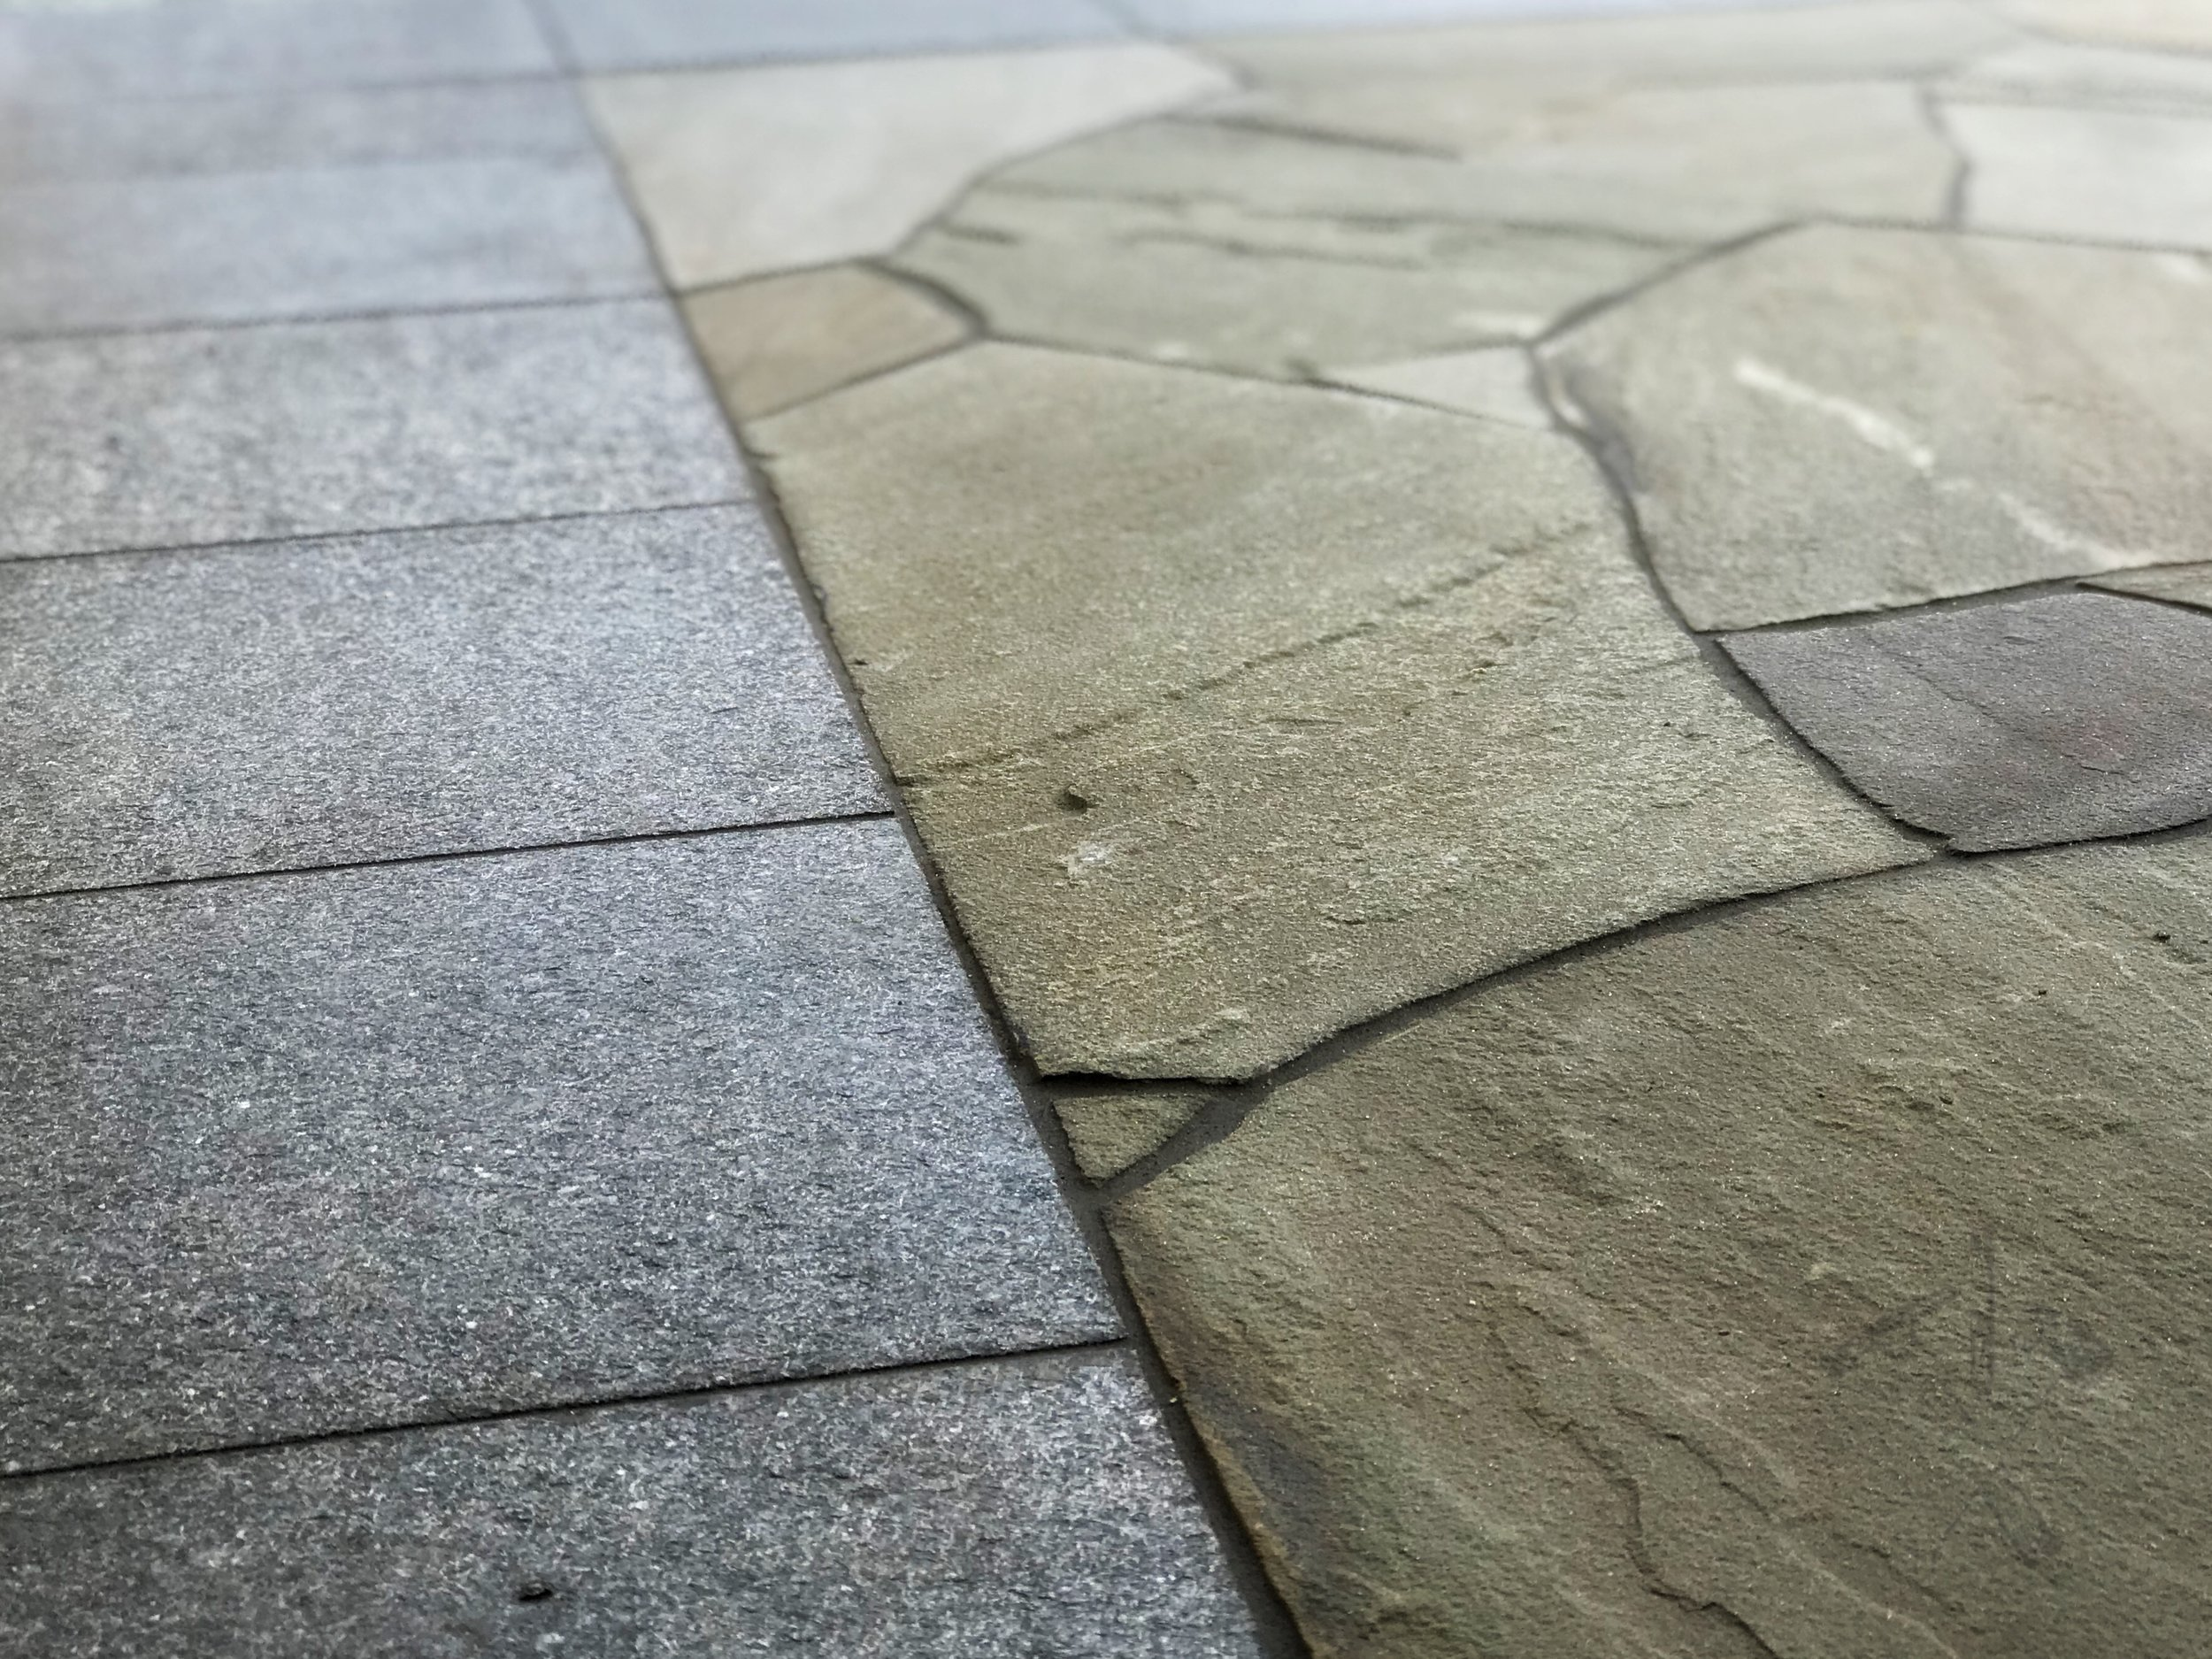 Natural Stone Flooring - The natural alternative to standard tile floors using natural shapes, textures, and modern building techniques.